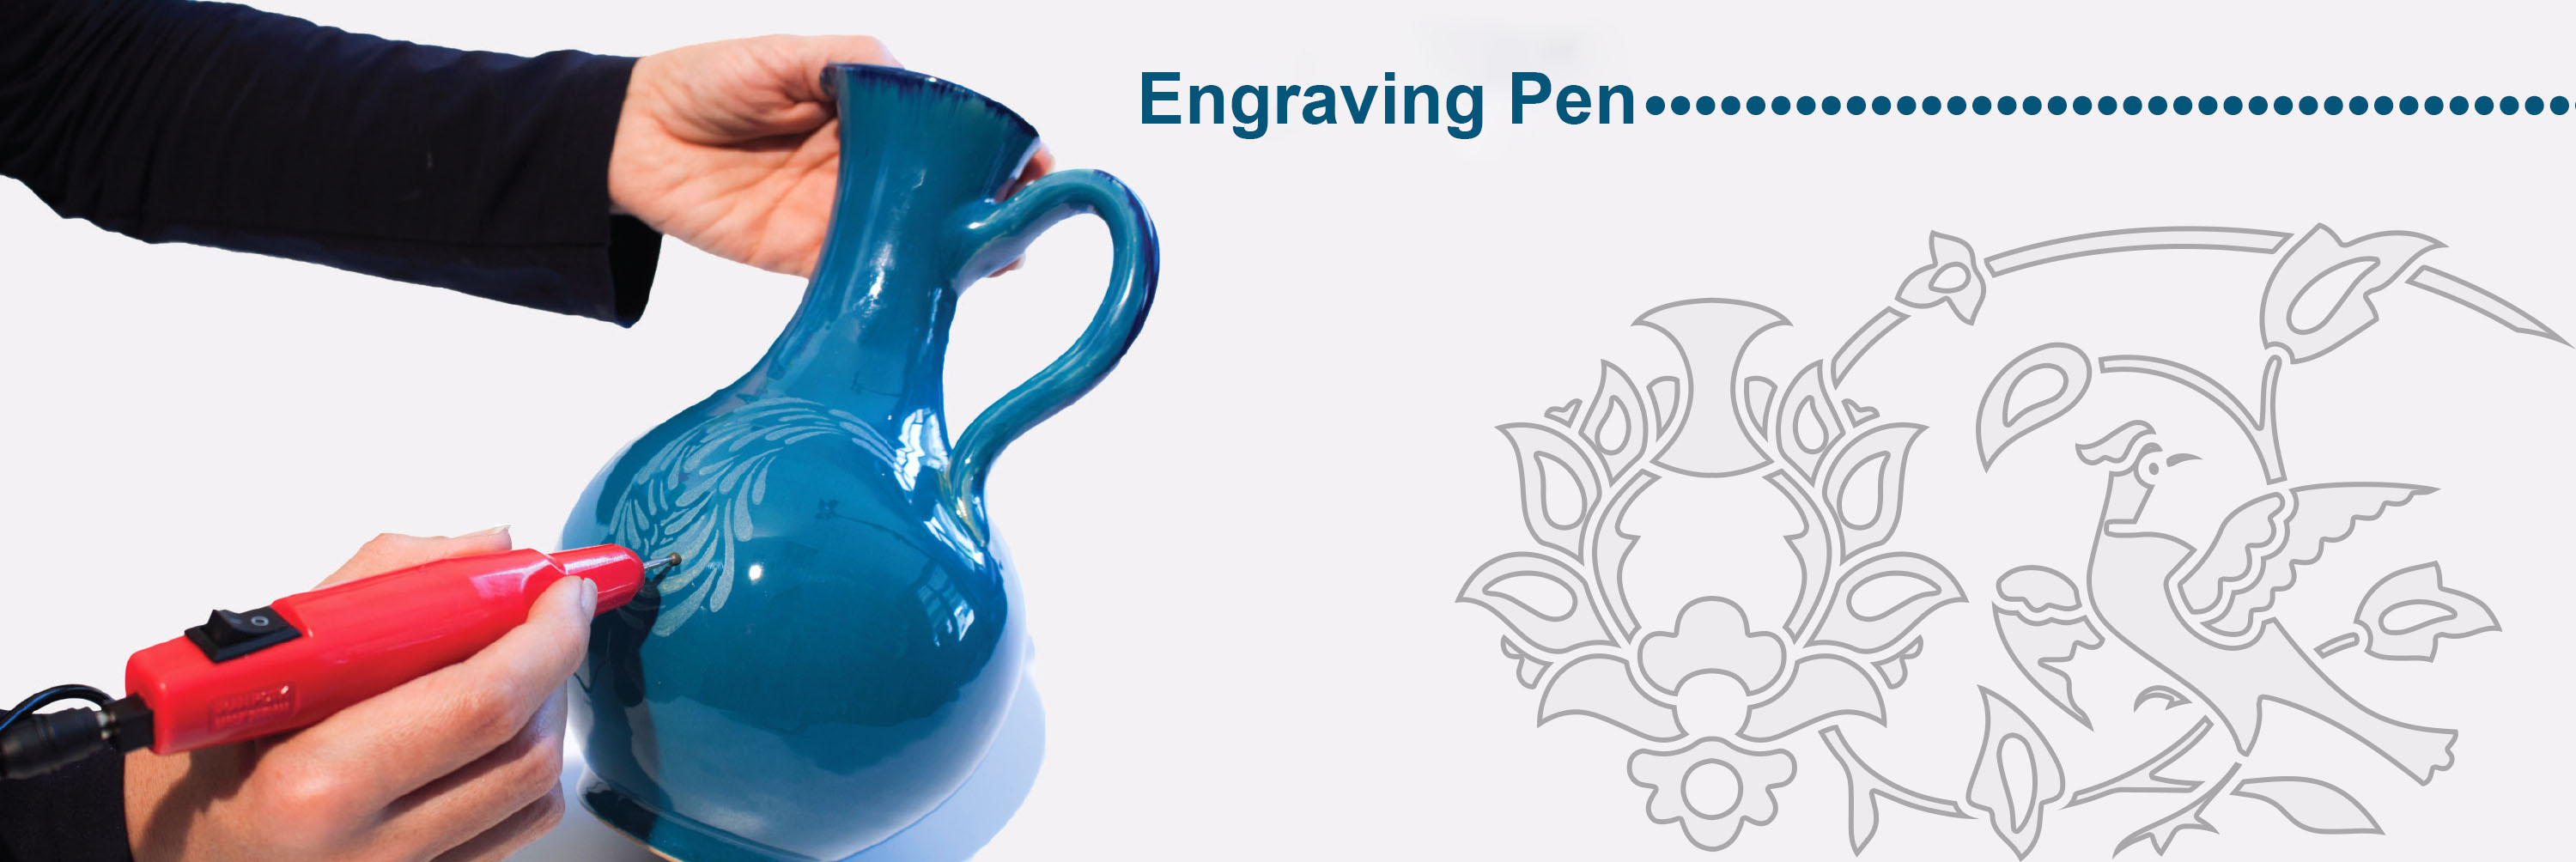 Engraving Pen